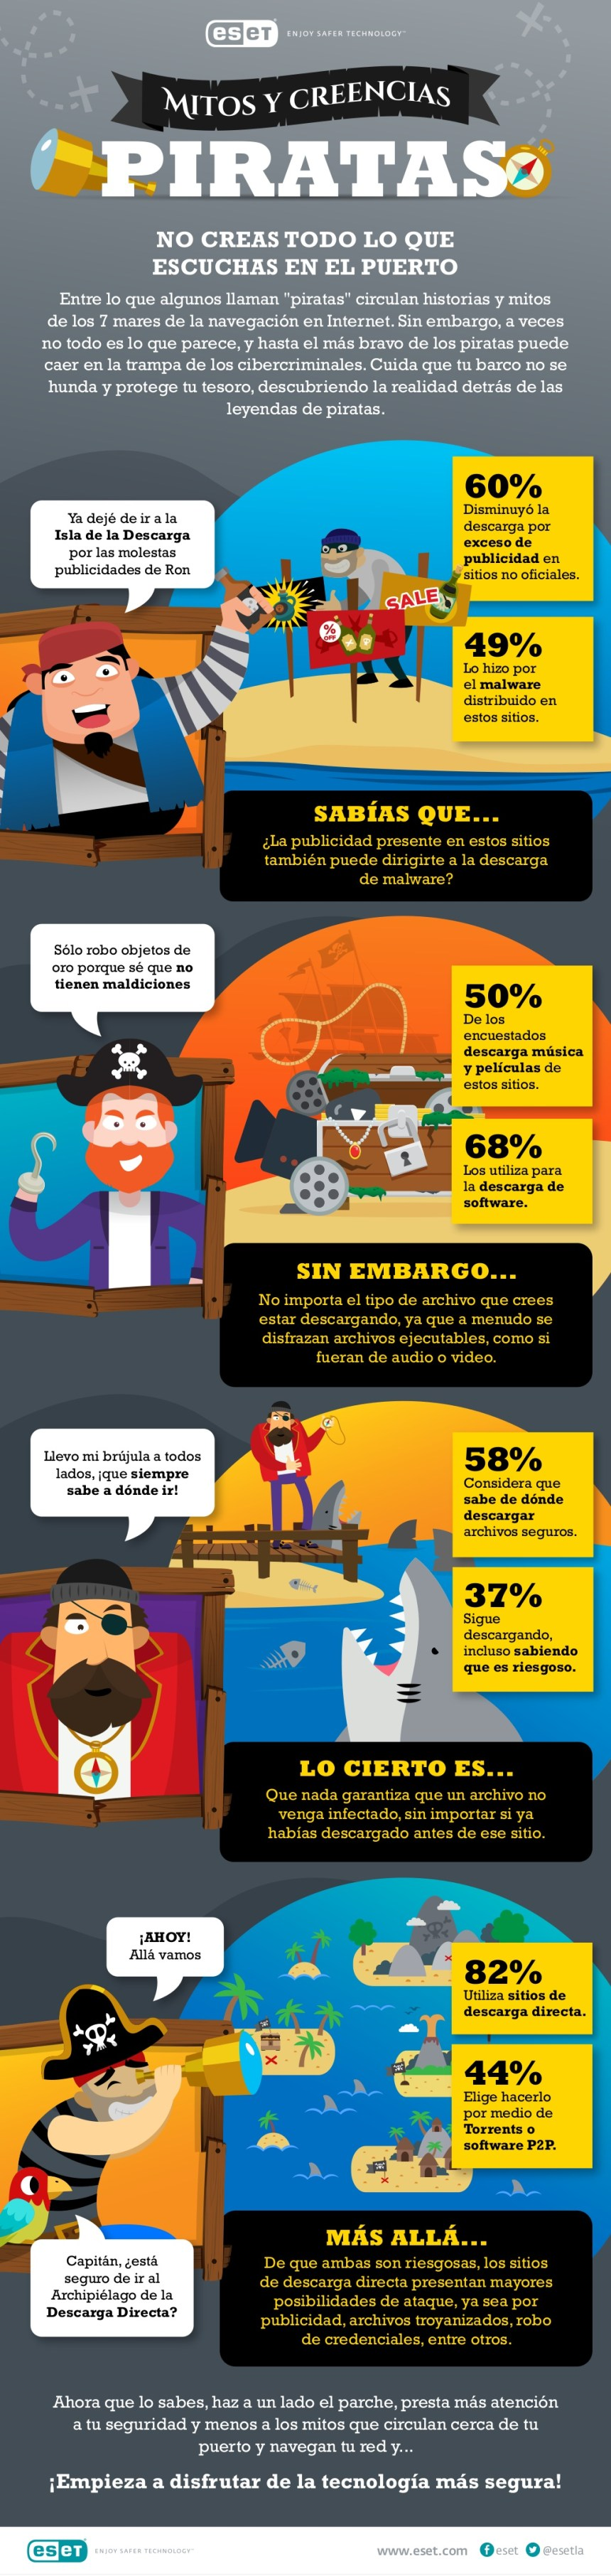 Mitos y creencias piratas